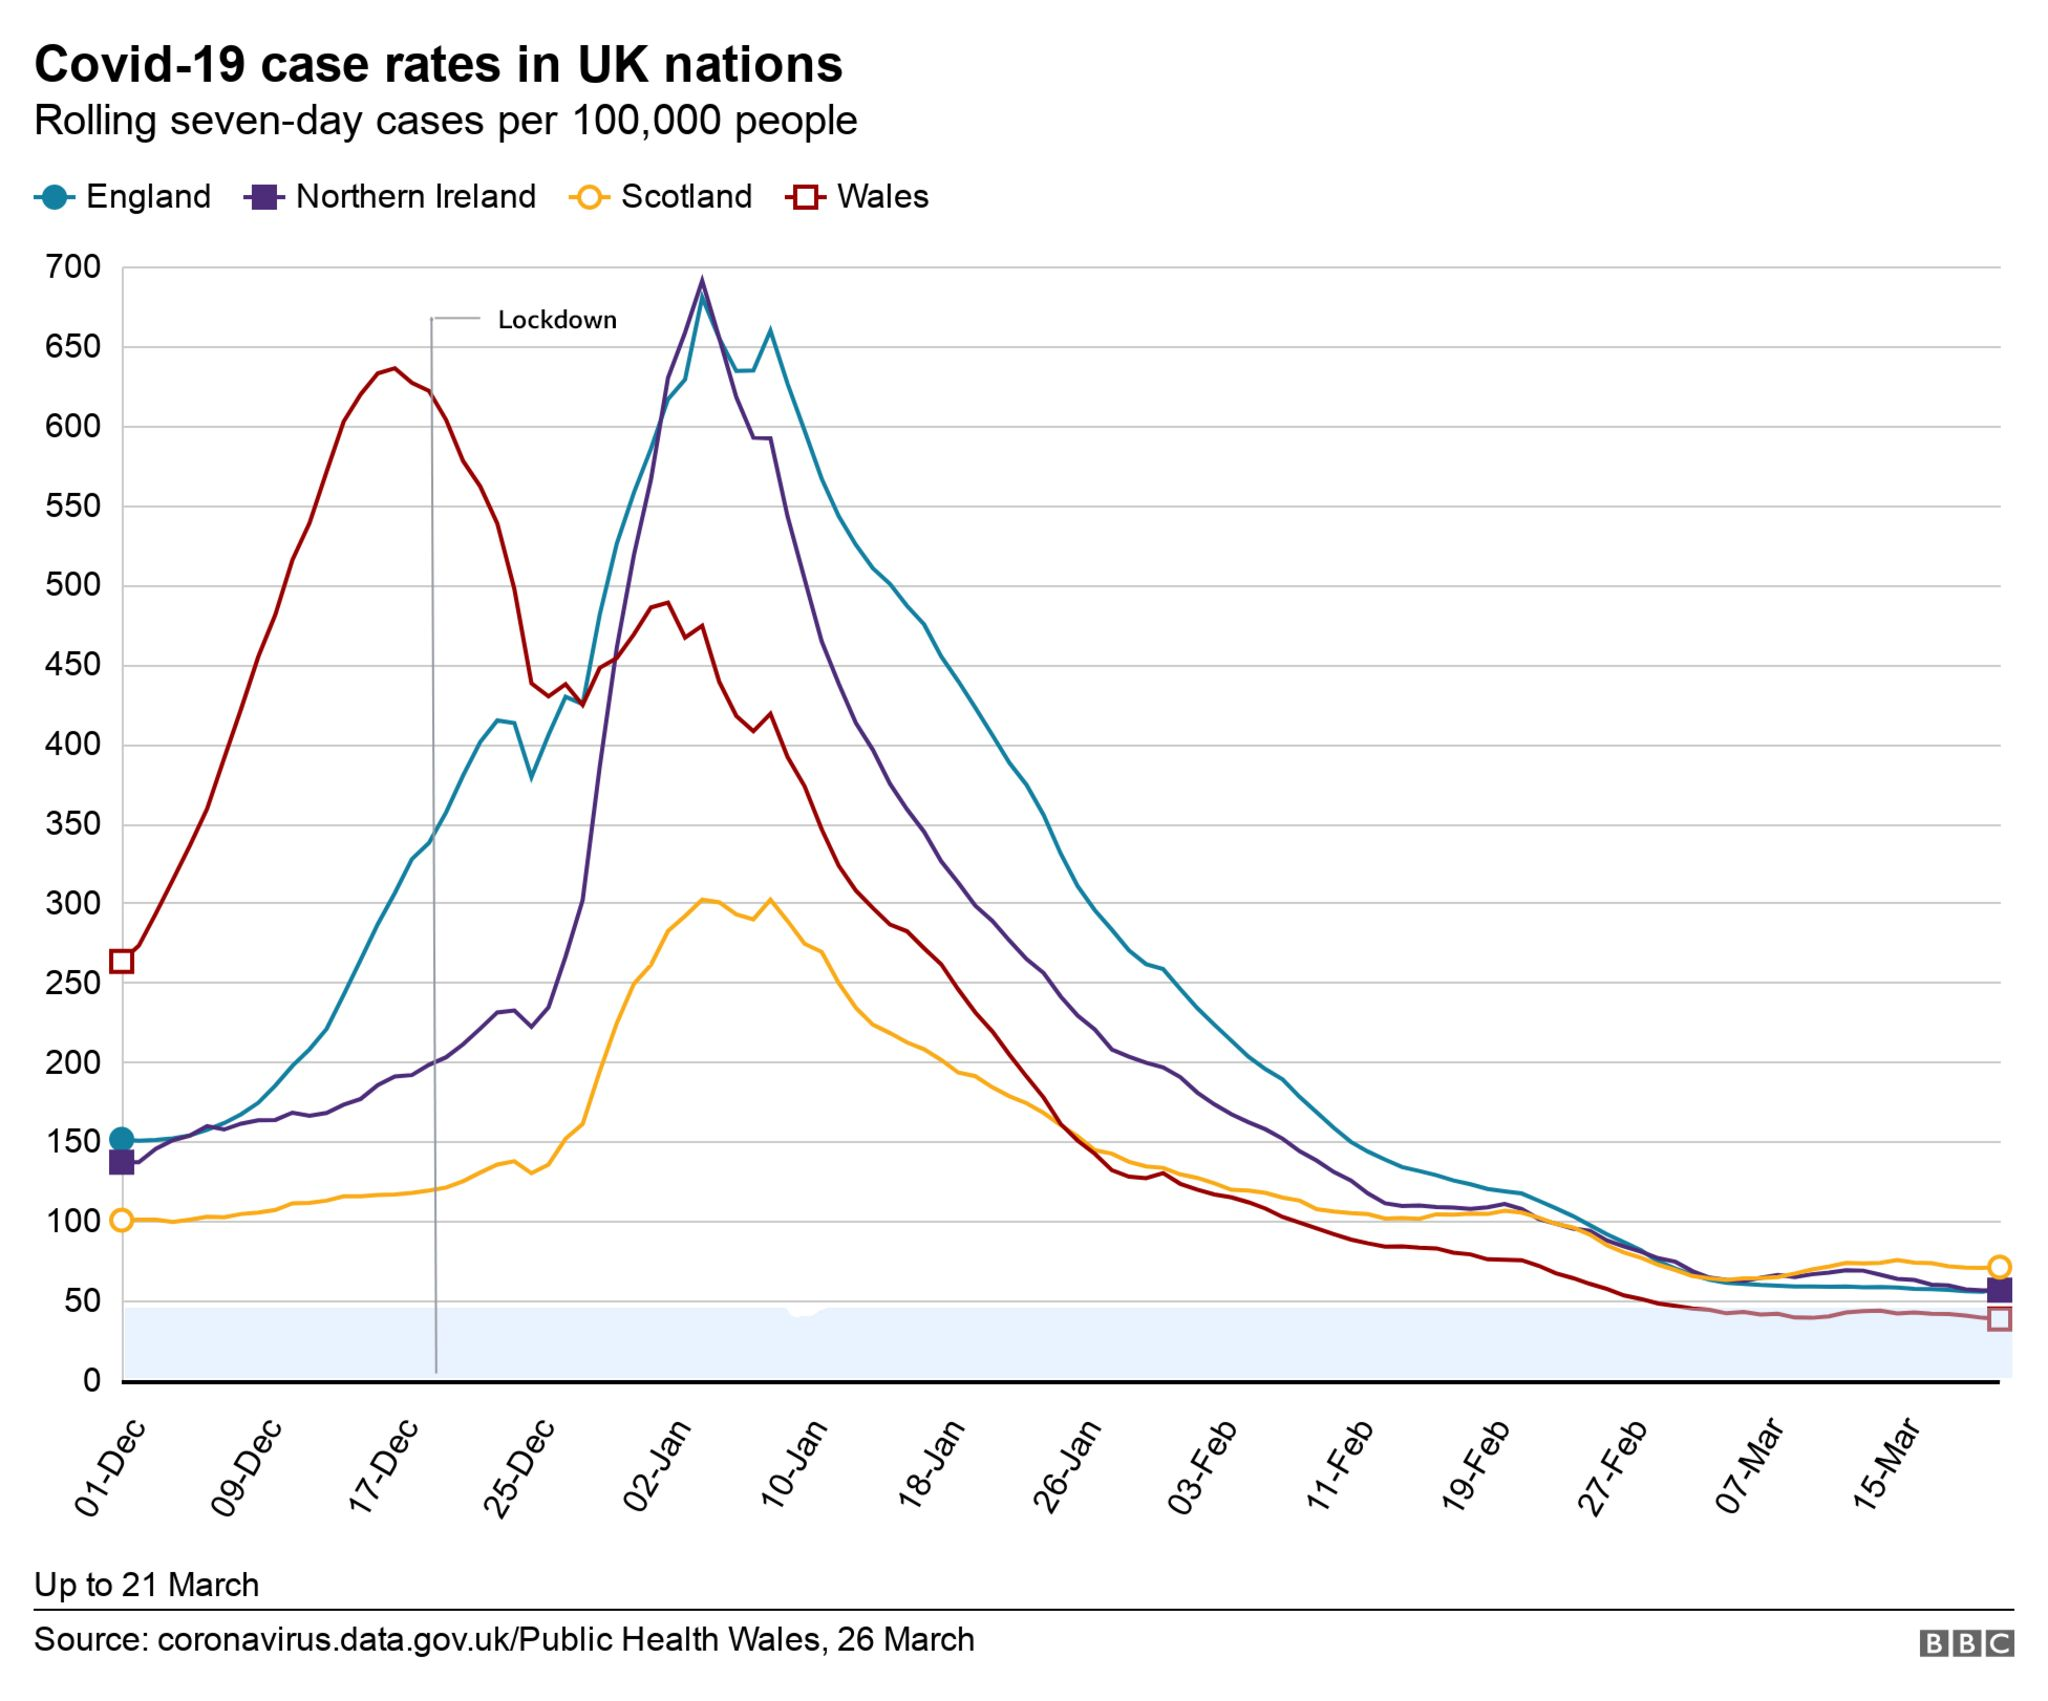 A graphic showing Covid case rates in the UK nations